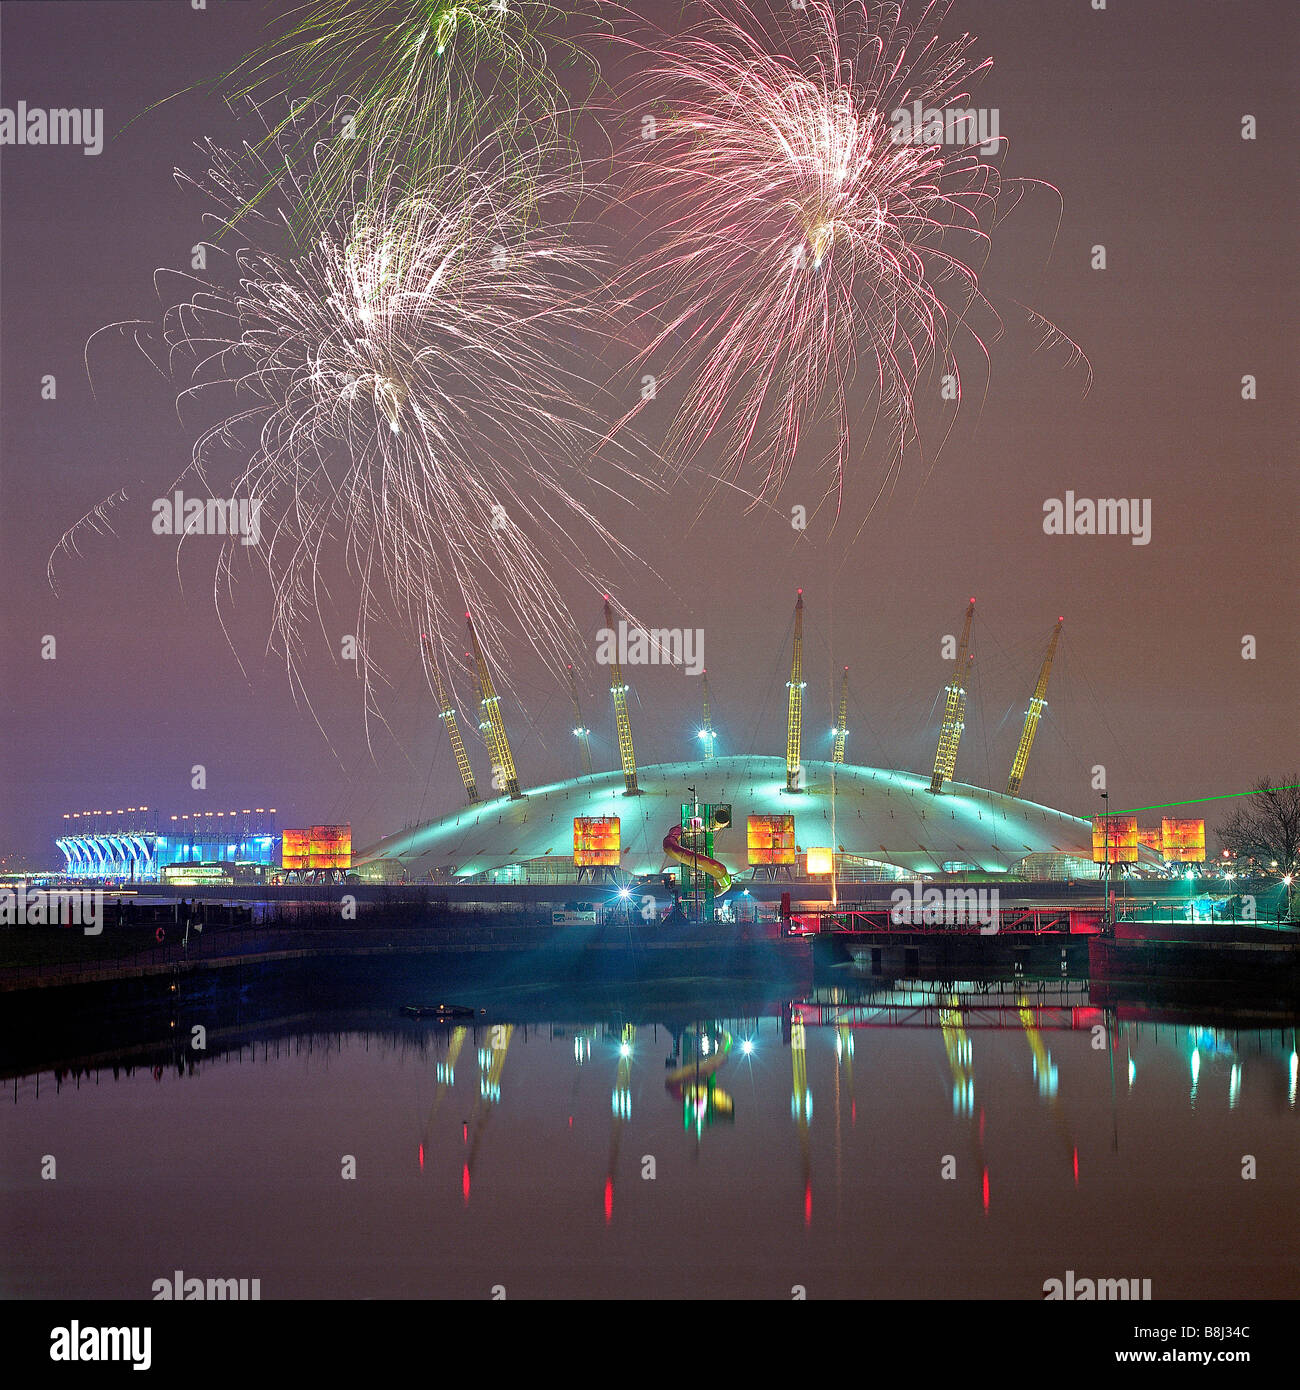 Firework display celebrating the new 2000 millennium over the Millennium Dome/O2 Arena in London. Stock Photo